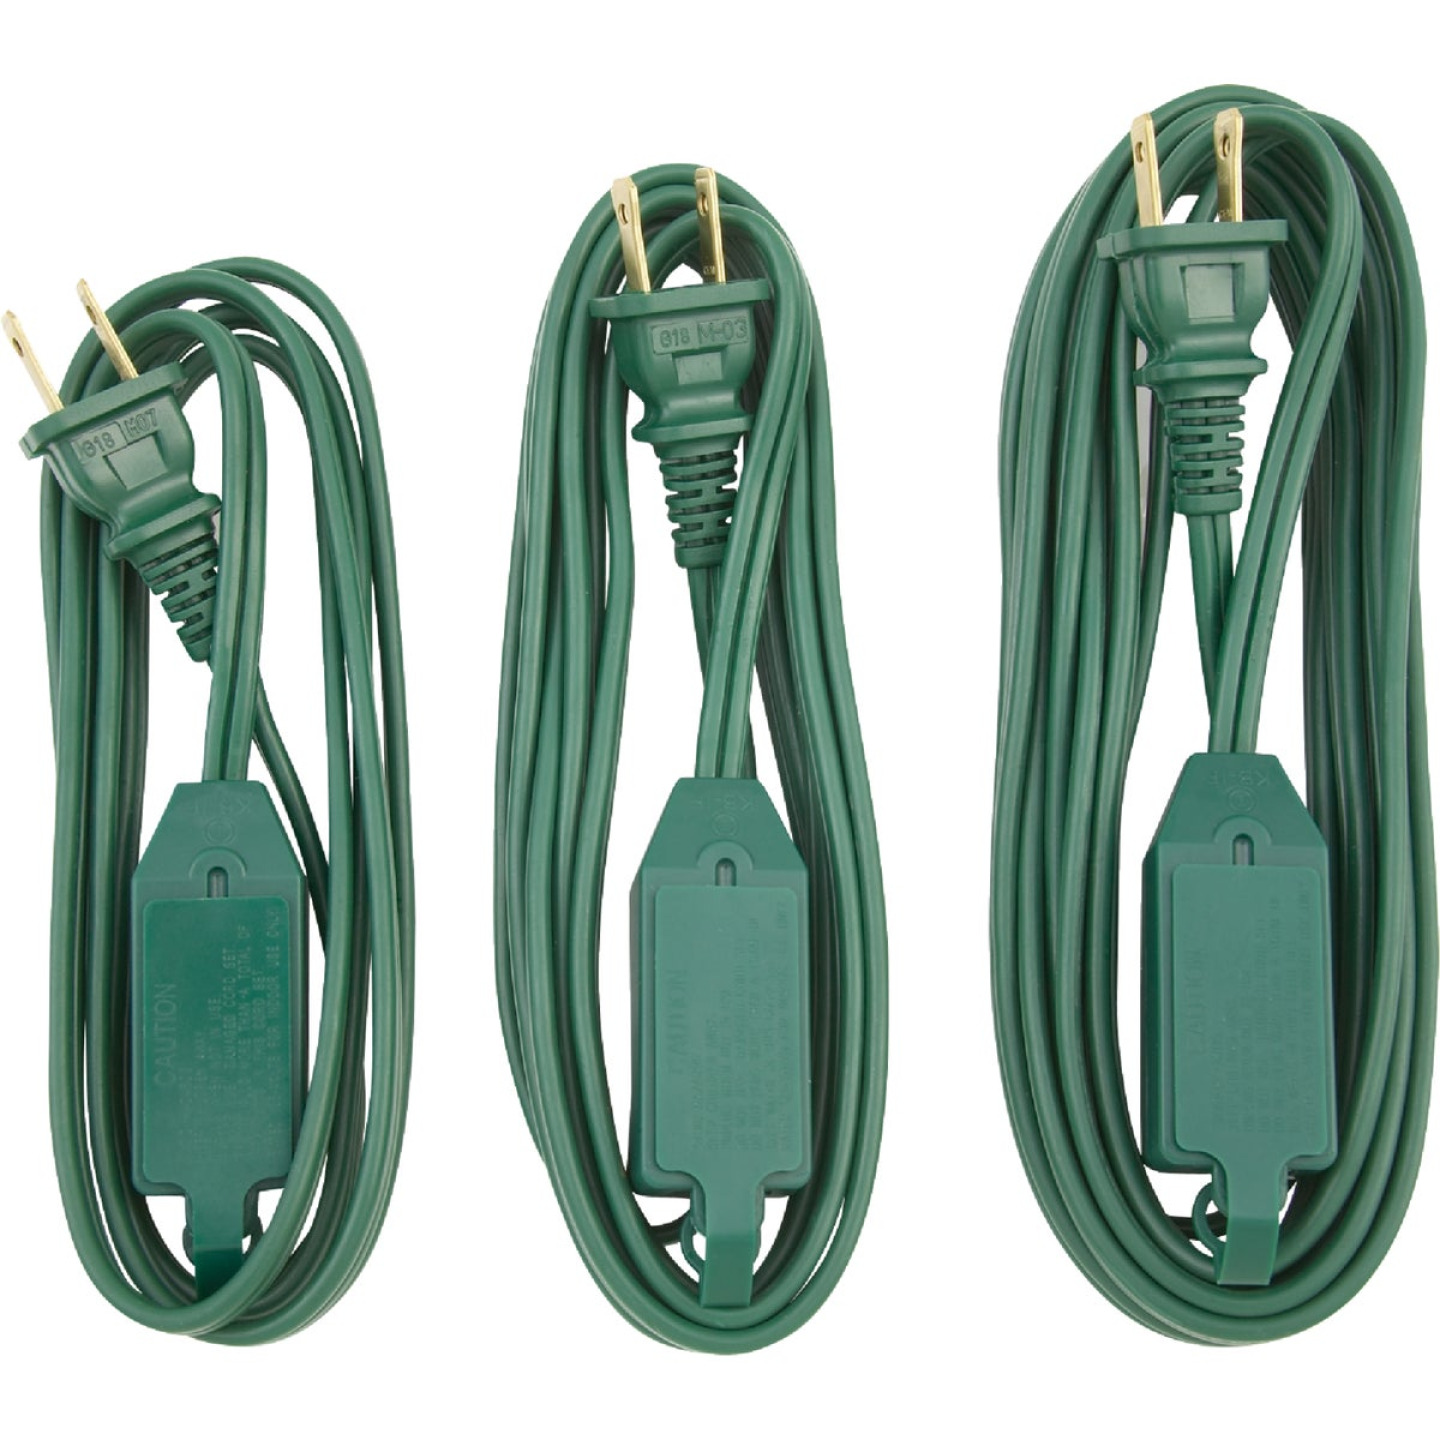 Do it 6 Ft./9 Ft./15 Ft. 16/2 Extension Cord Set (3-Pack) Image 3